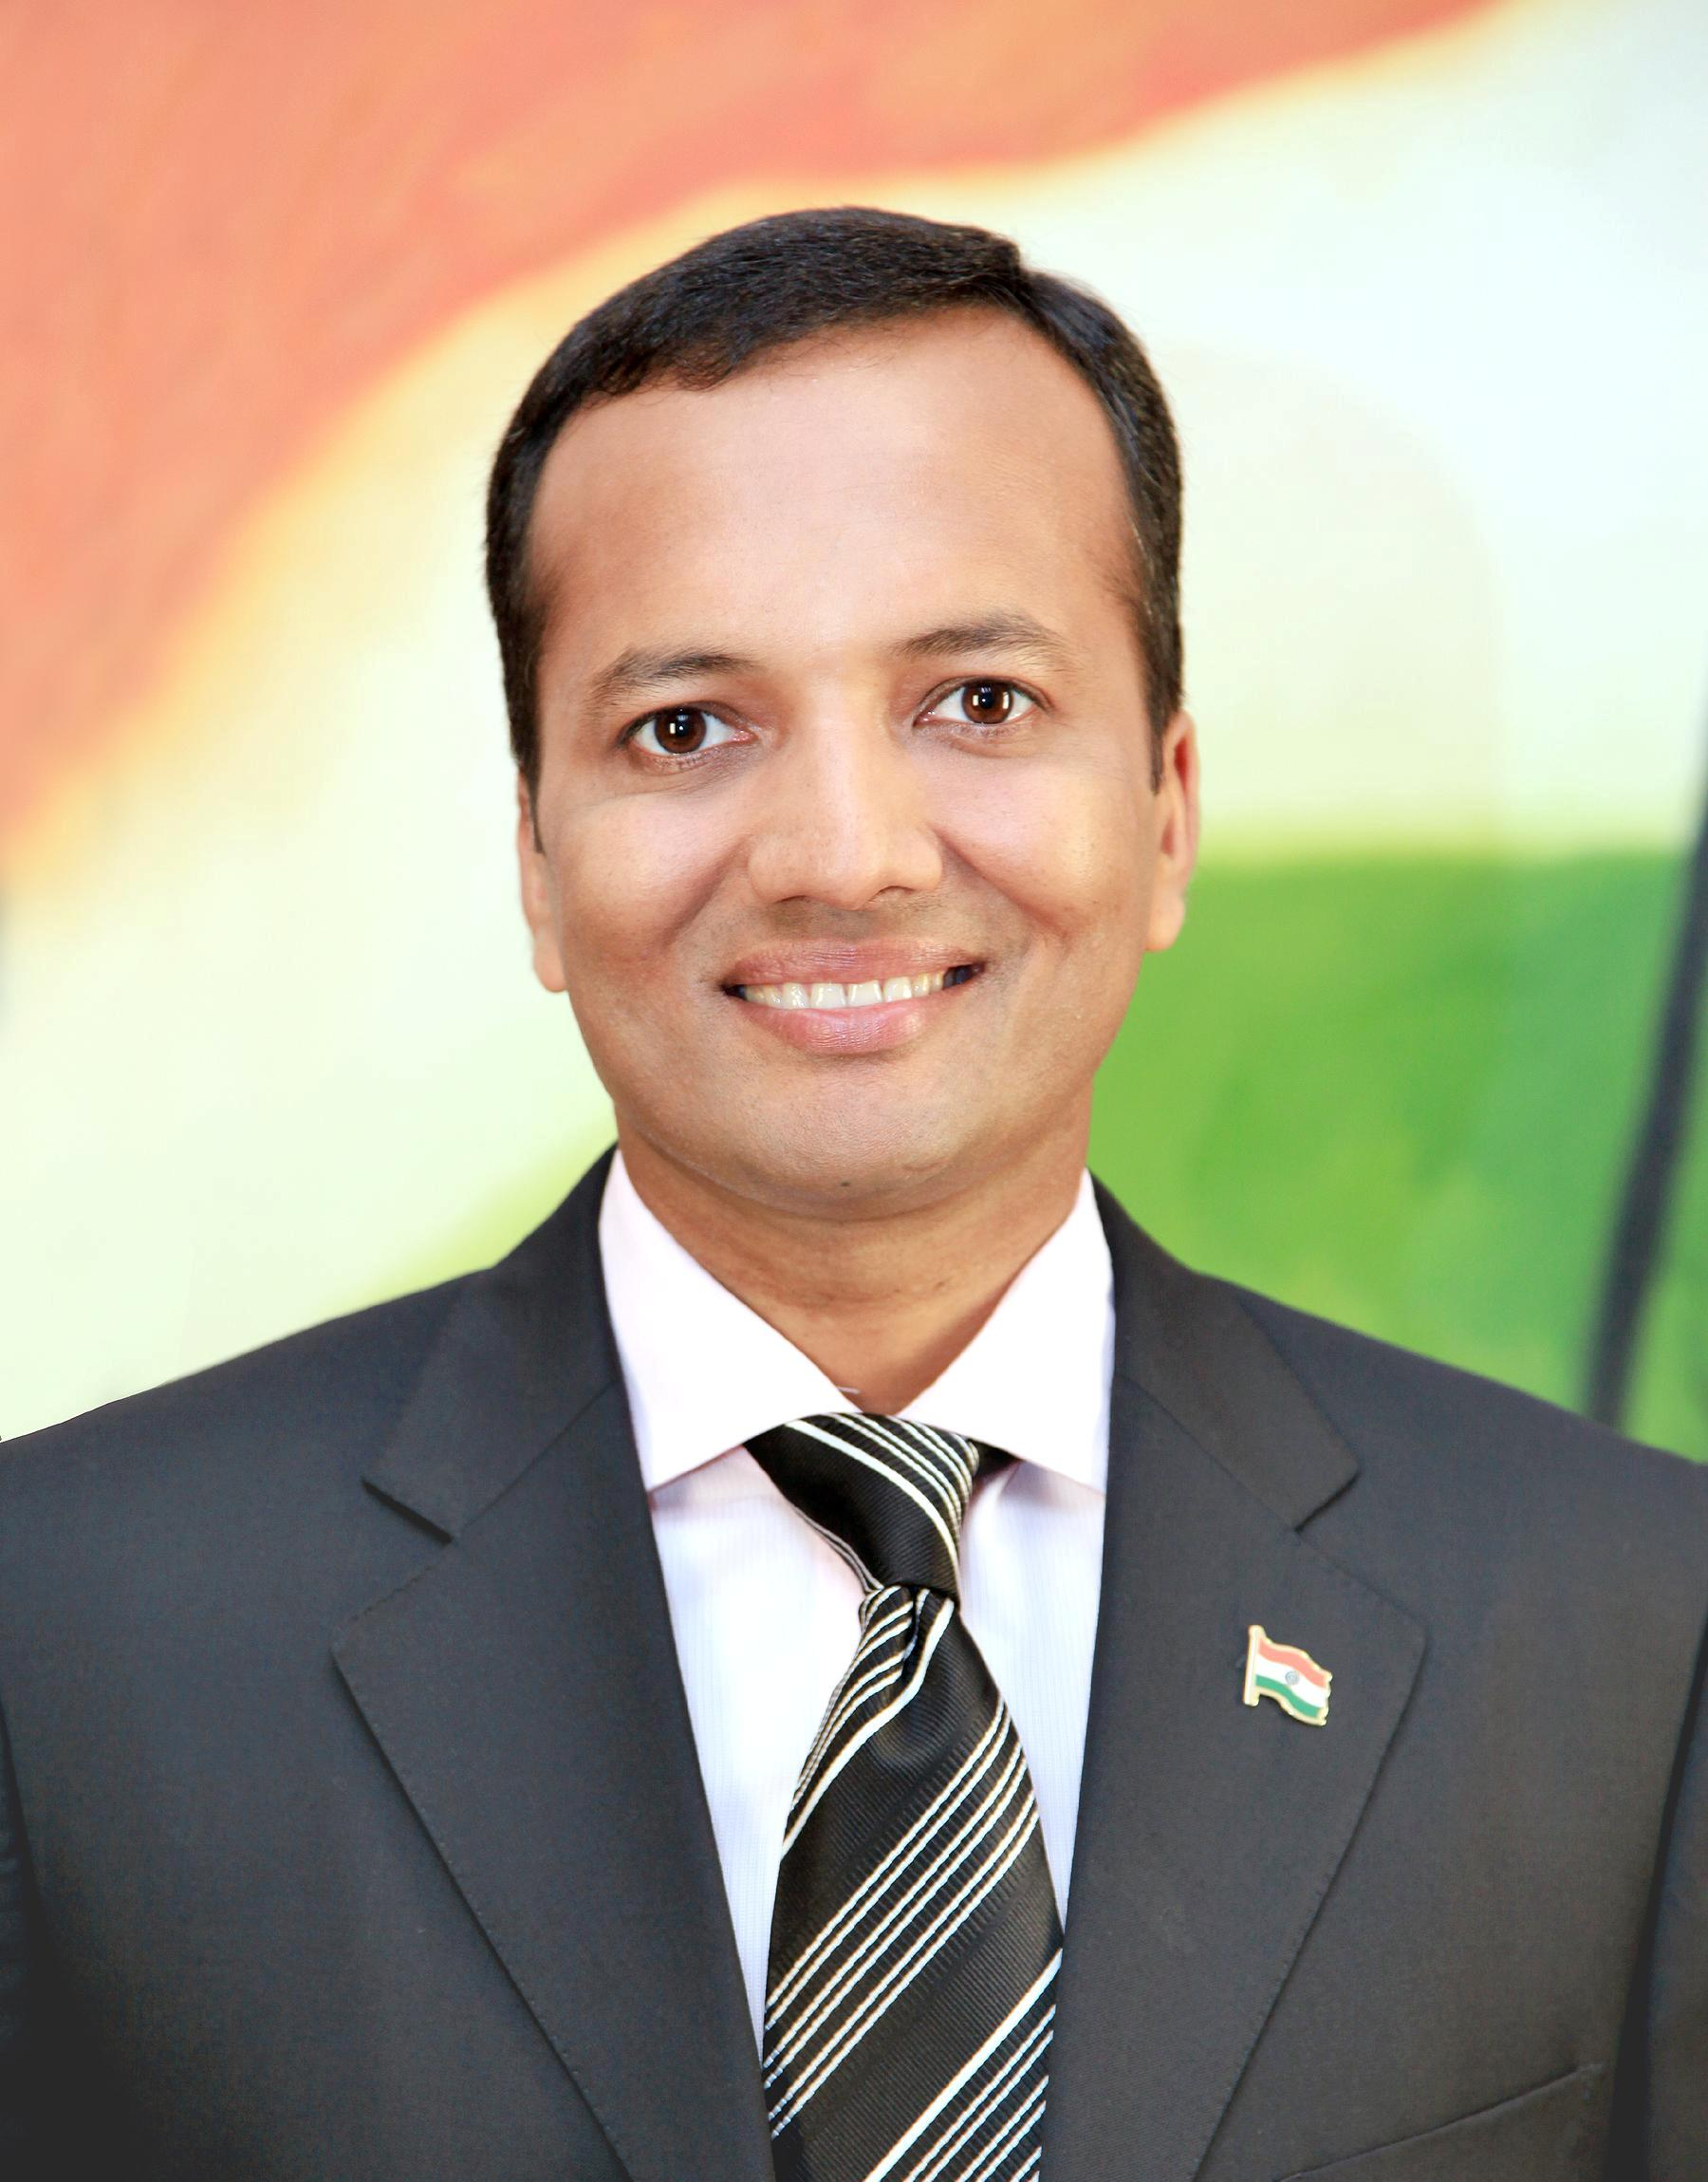 Charges levied against Jindal